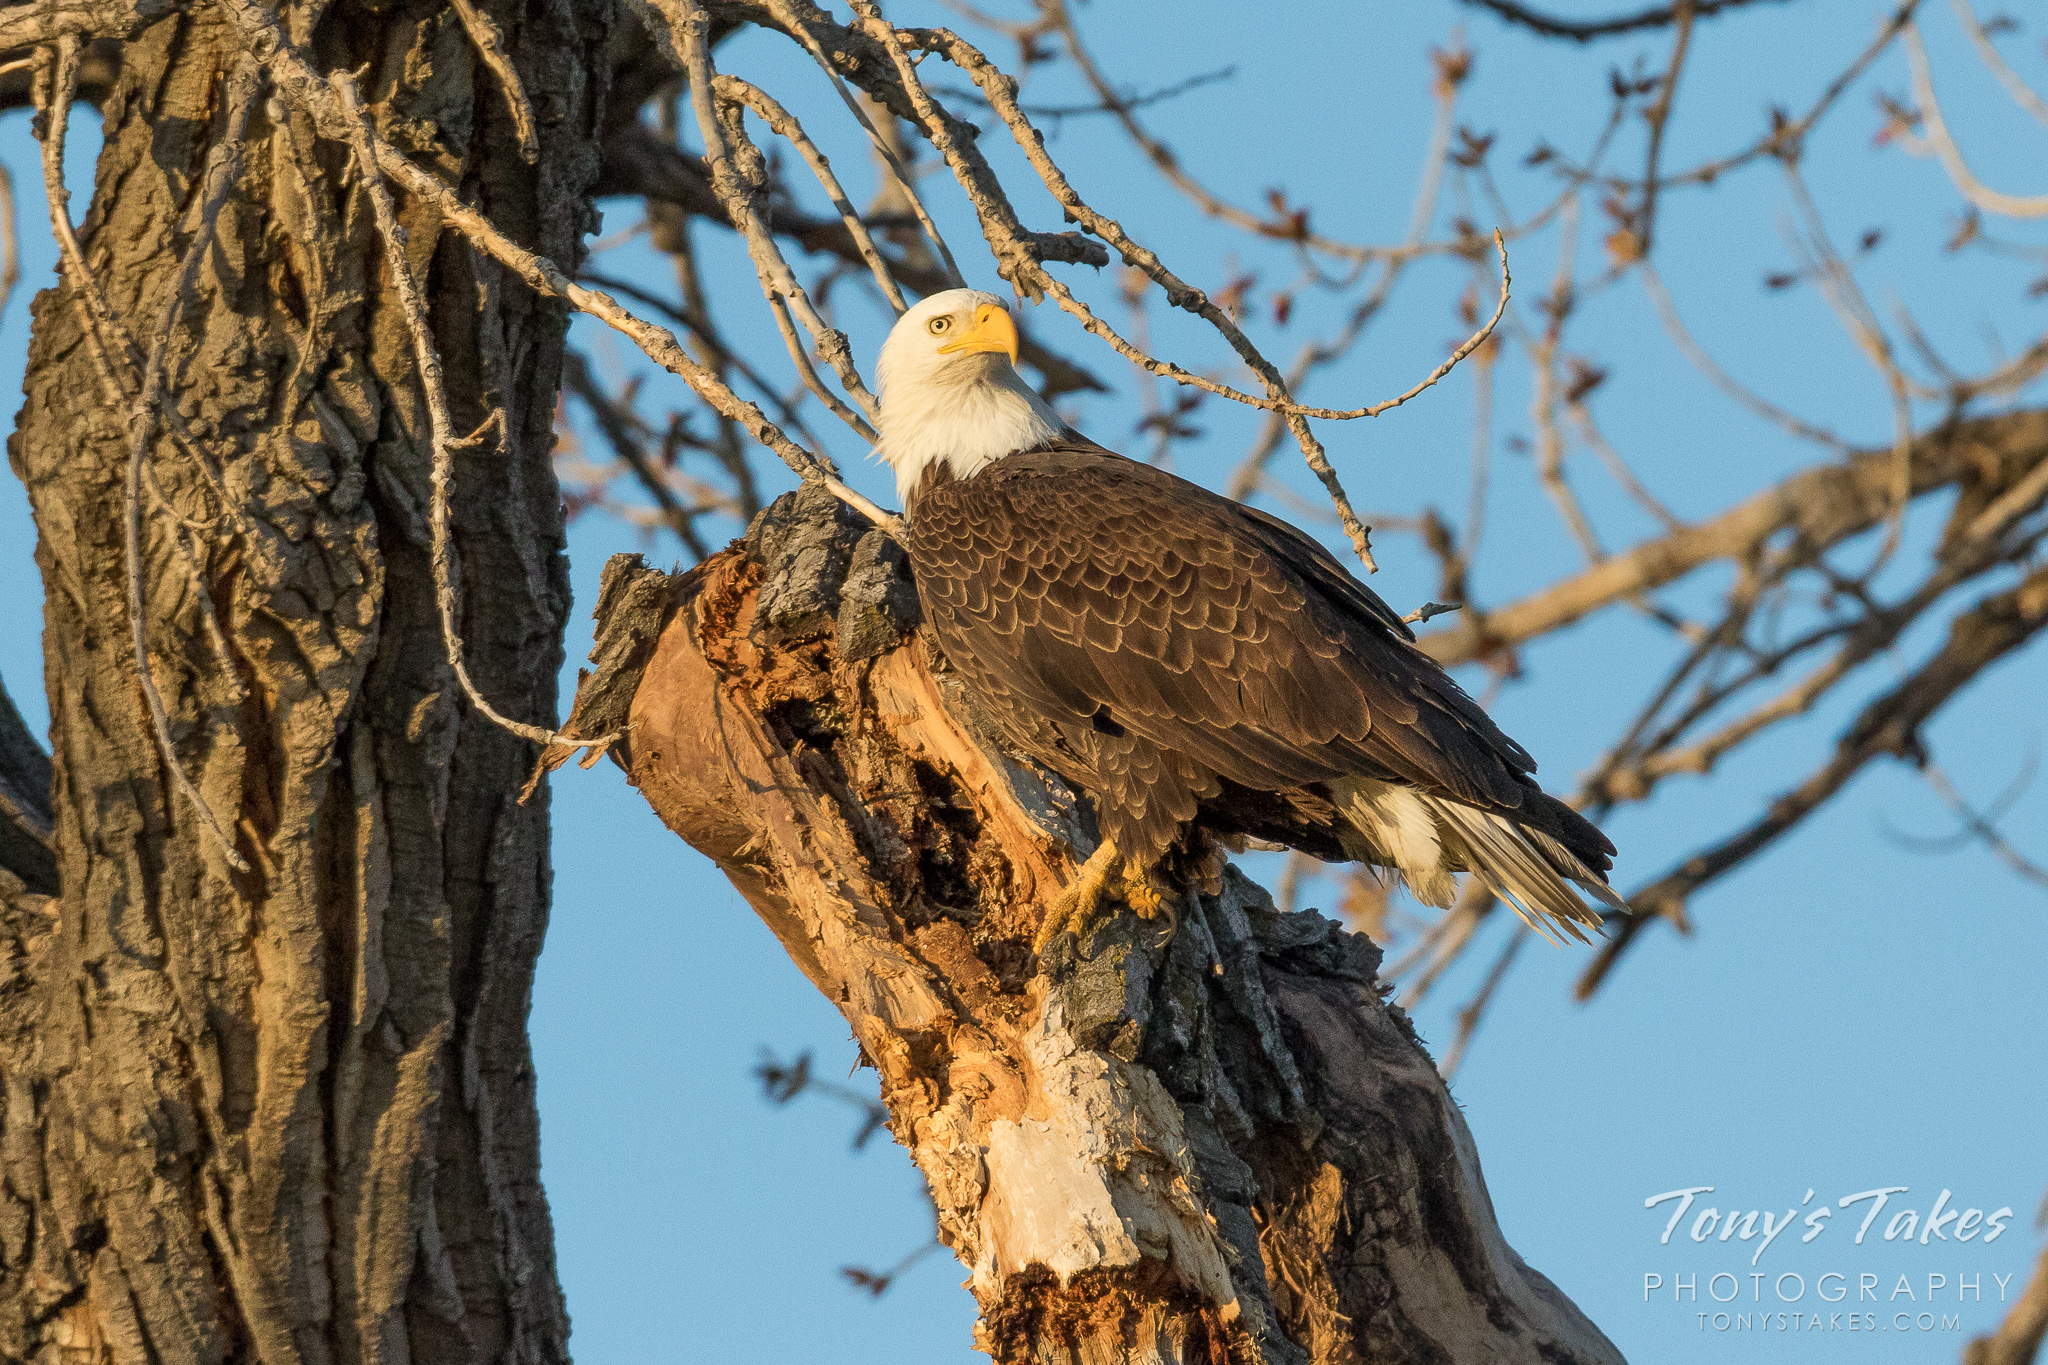 Bald Eagle bathed in the early morning light